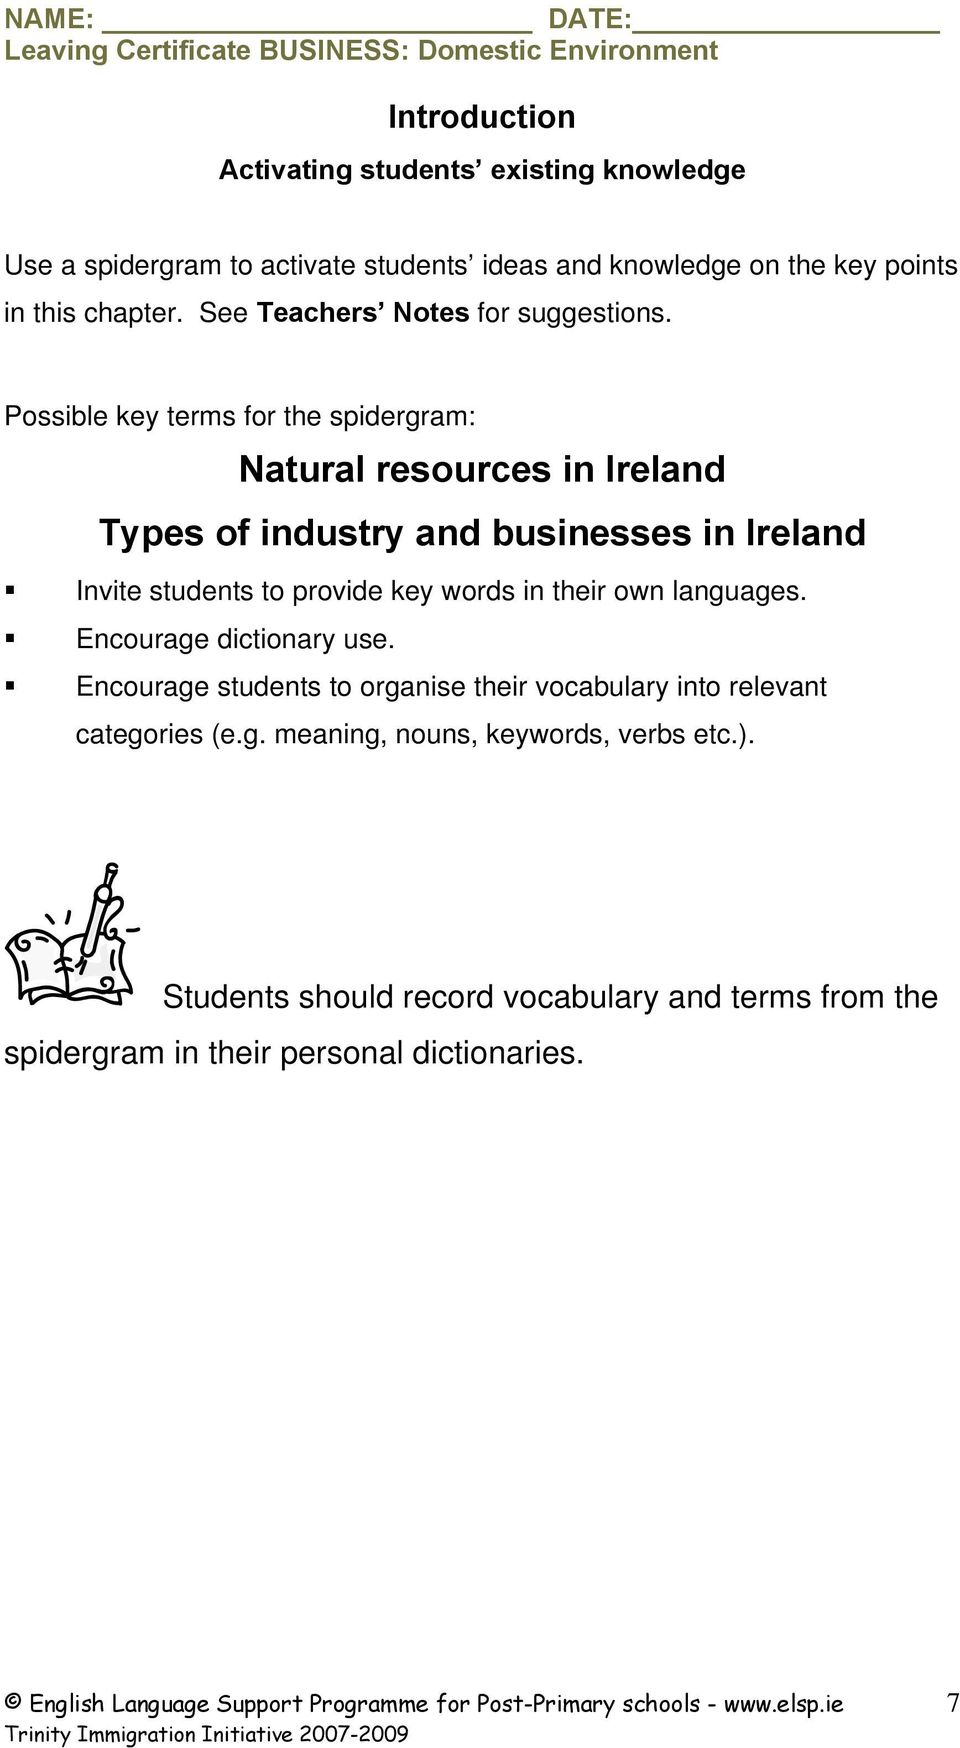 Possible key terms for the spidergram: Natural resources in Ireland Types of industry and businesses in Ireland Invite students to provide key words in their own